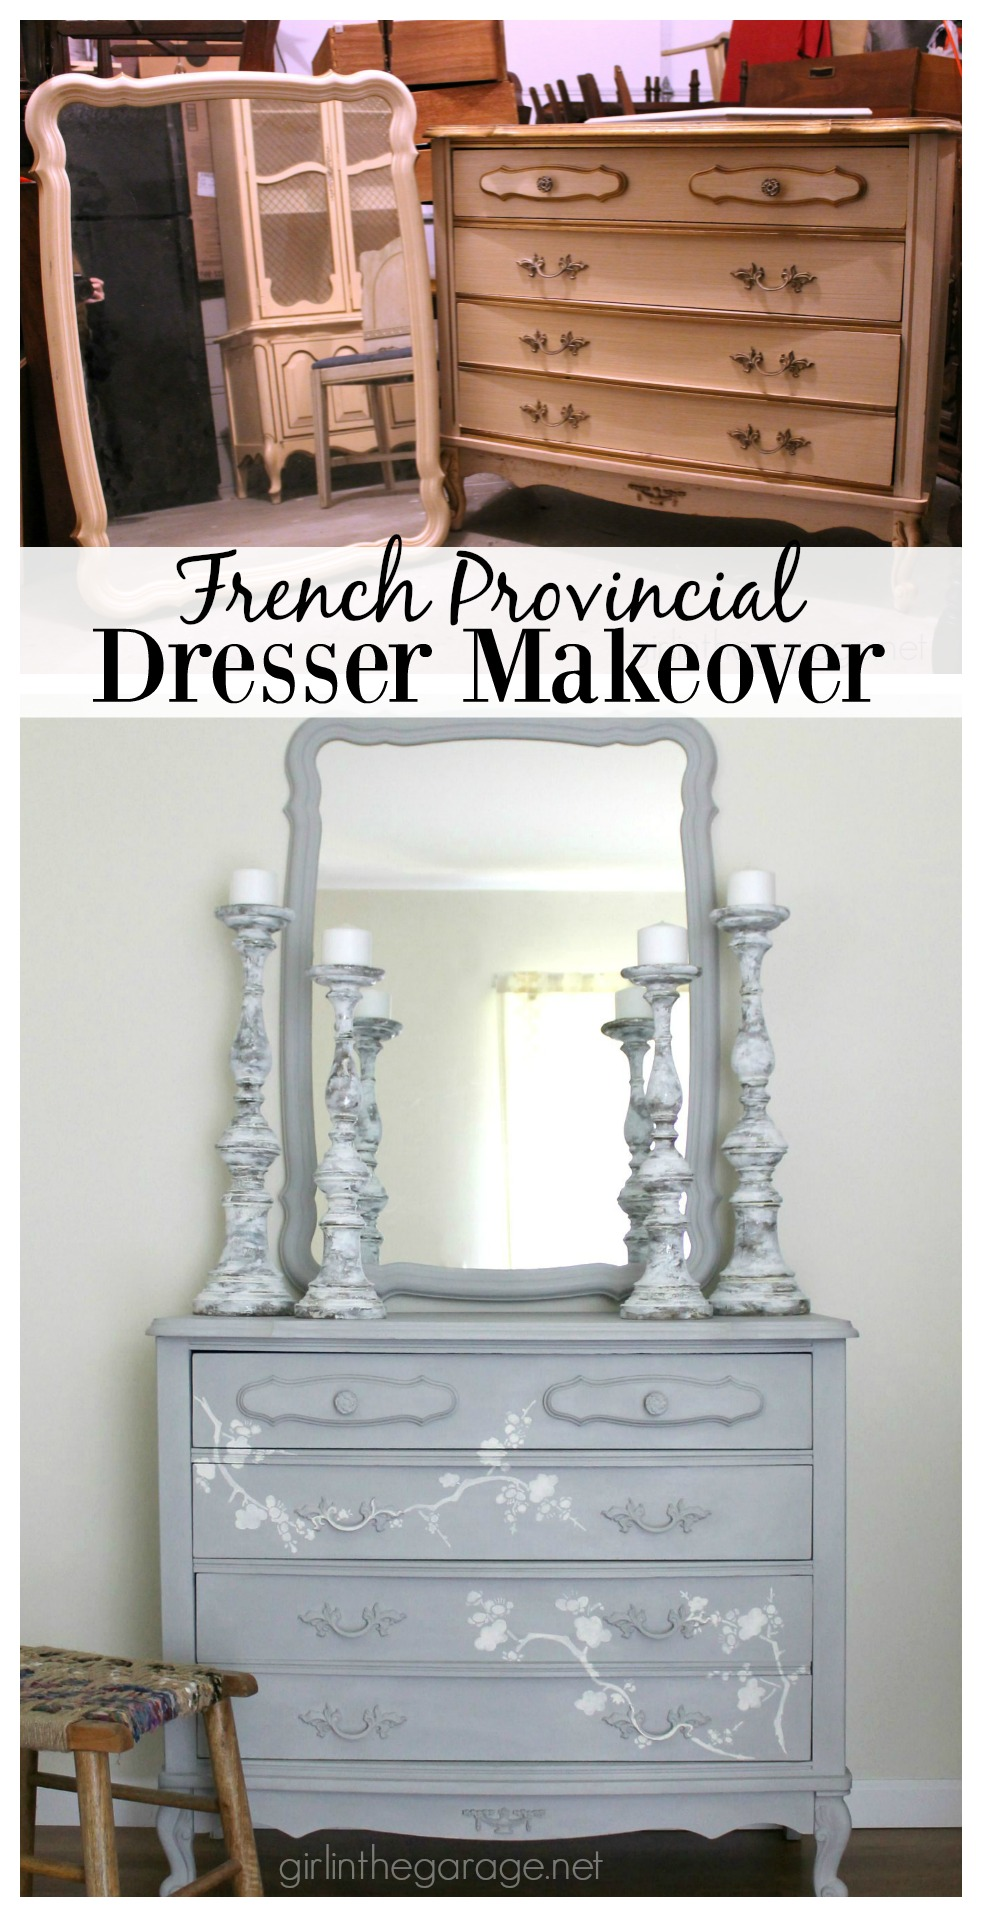 French Provincial dresser makeover with Chalk Paint® and Cherry Blossoms stencil. Girl in the Garage